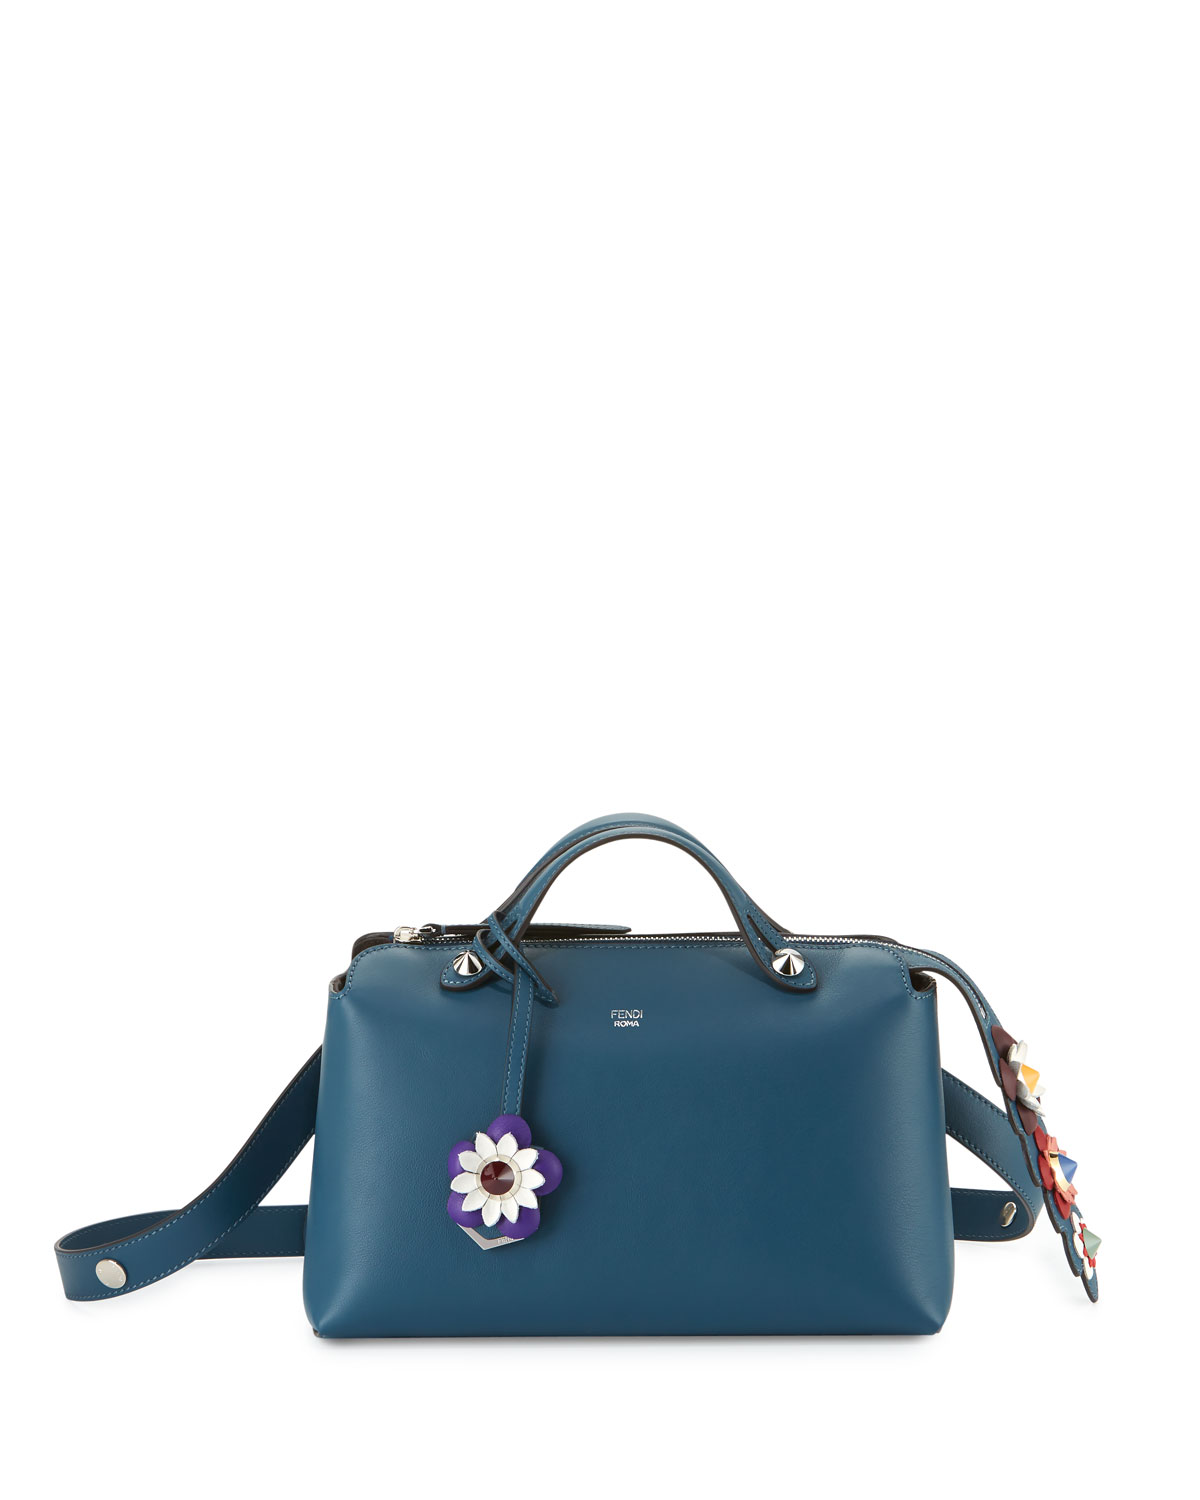 f12fdd5adaa7 Fendi Small By the Way Flower Satchel Bag